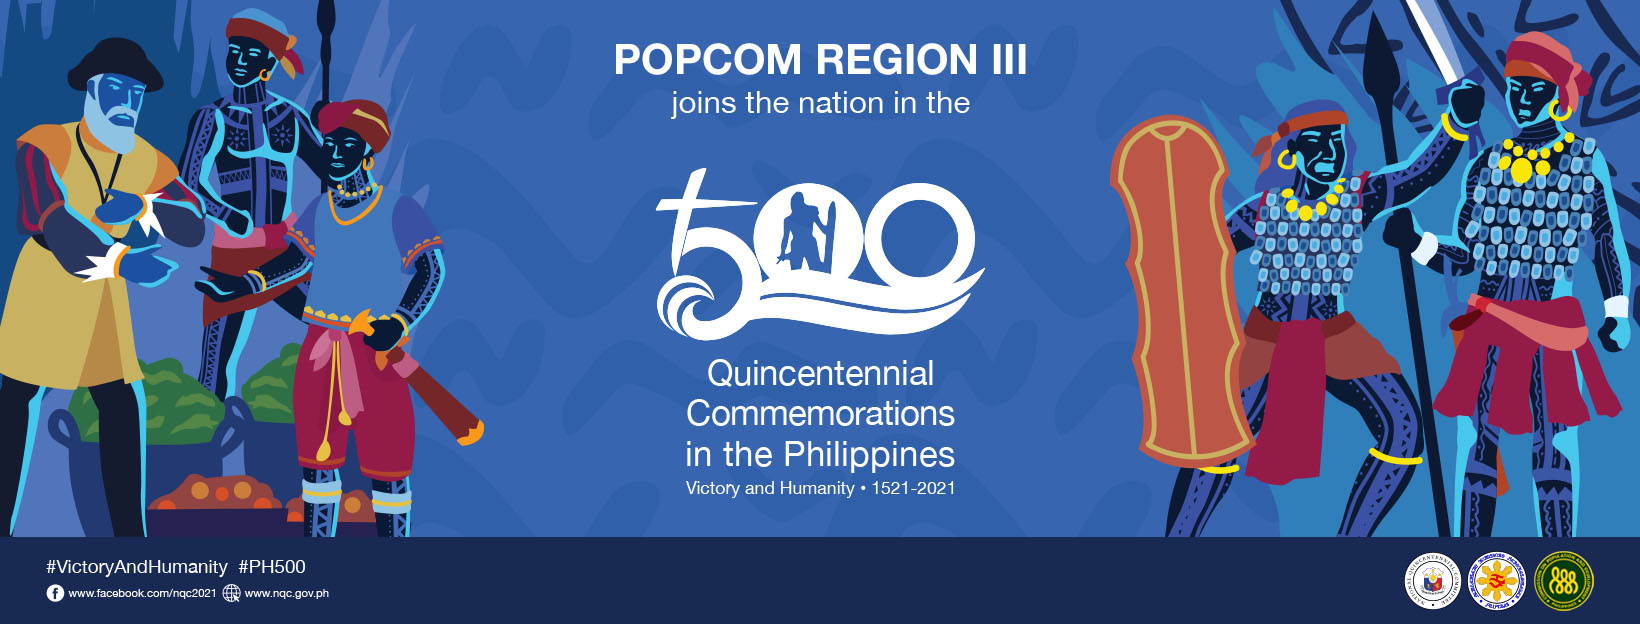 Region III joins in the Quincentennial Commemorations in the Philippines